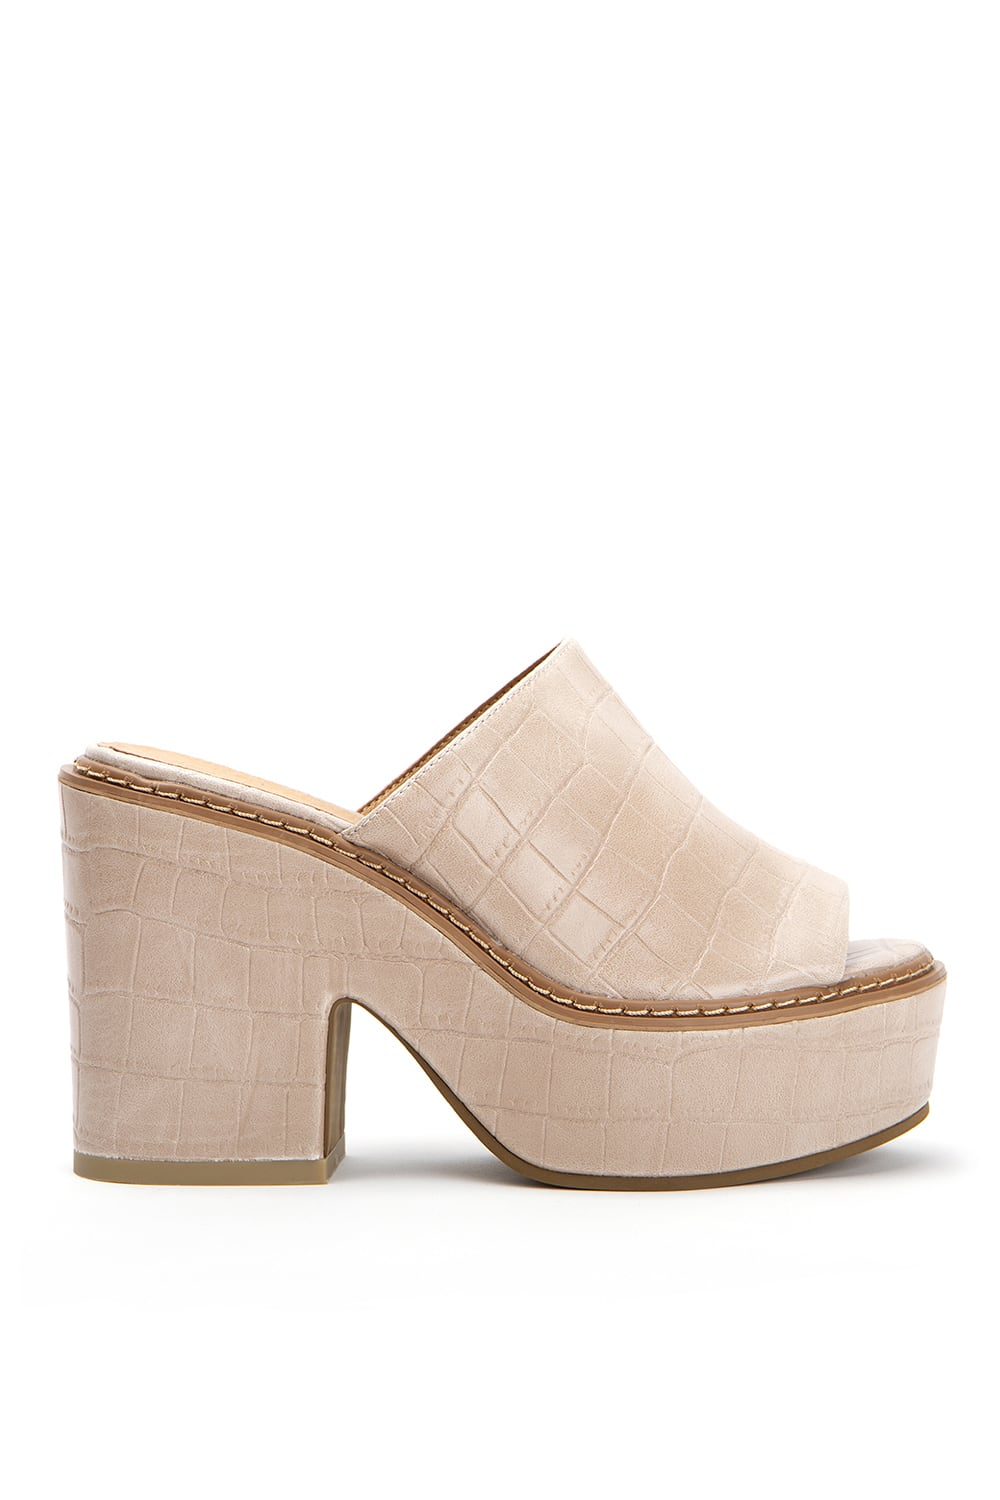 Edith Croco Taupe